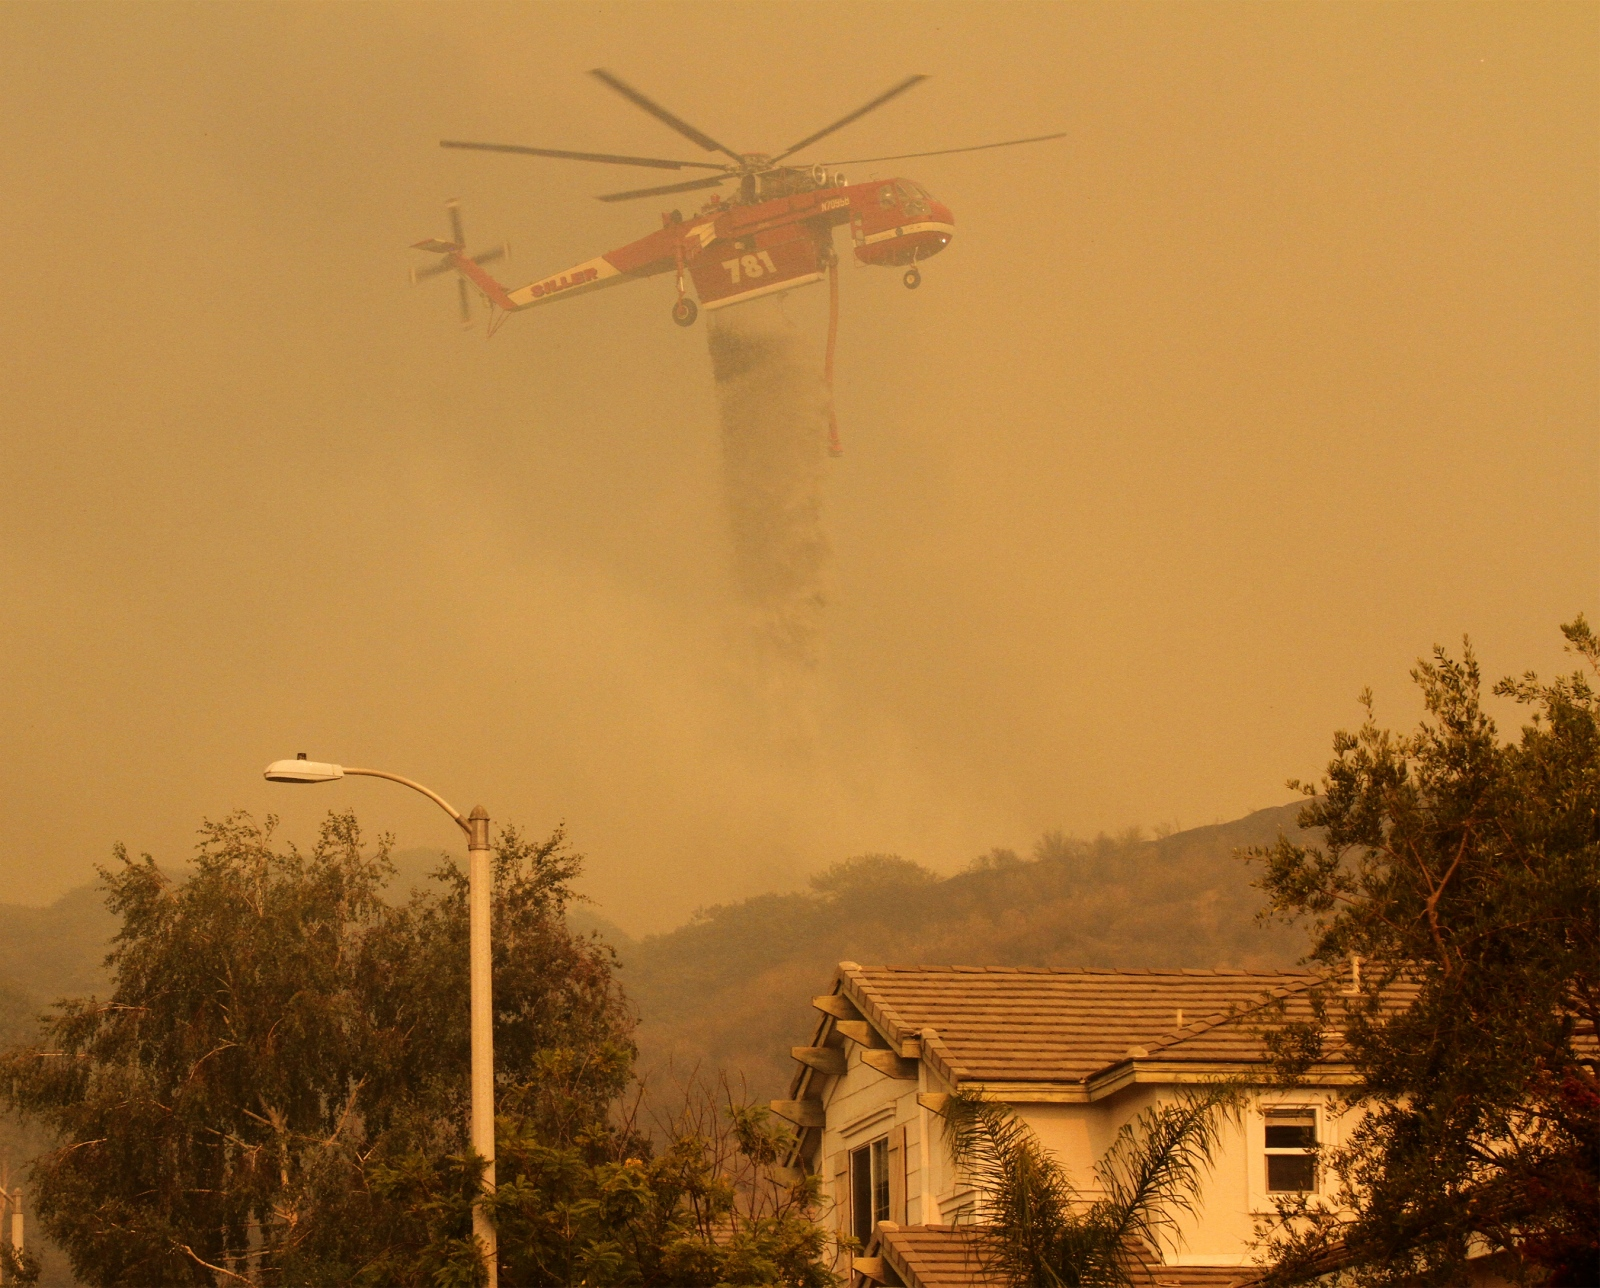 A helicopter drops water on the Sand Fire as it nears homes in the Fair Oaks Ranch neighborhood in Canyon Country on Sunday, July 24, 2016. More than 10,000 homes were evacuated during the height of the fire, and more than 18 homes were lost or damaged.